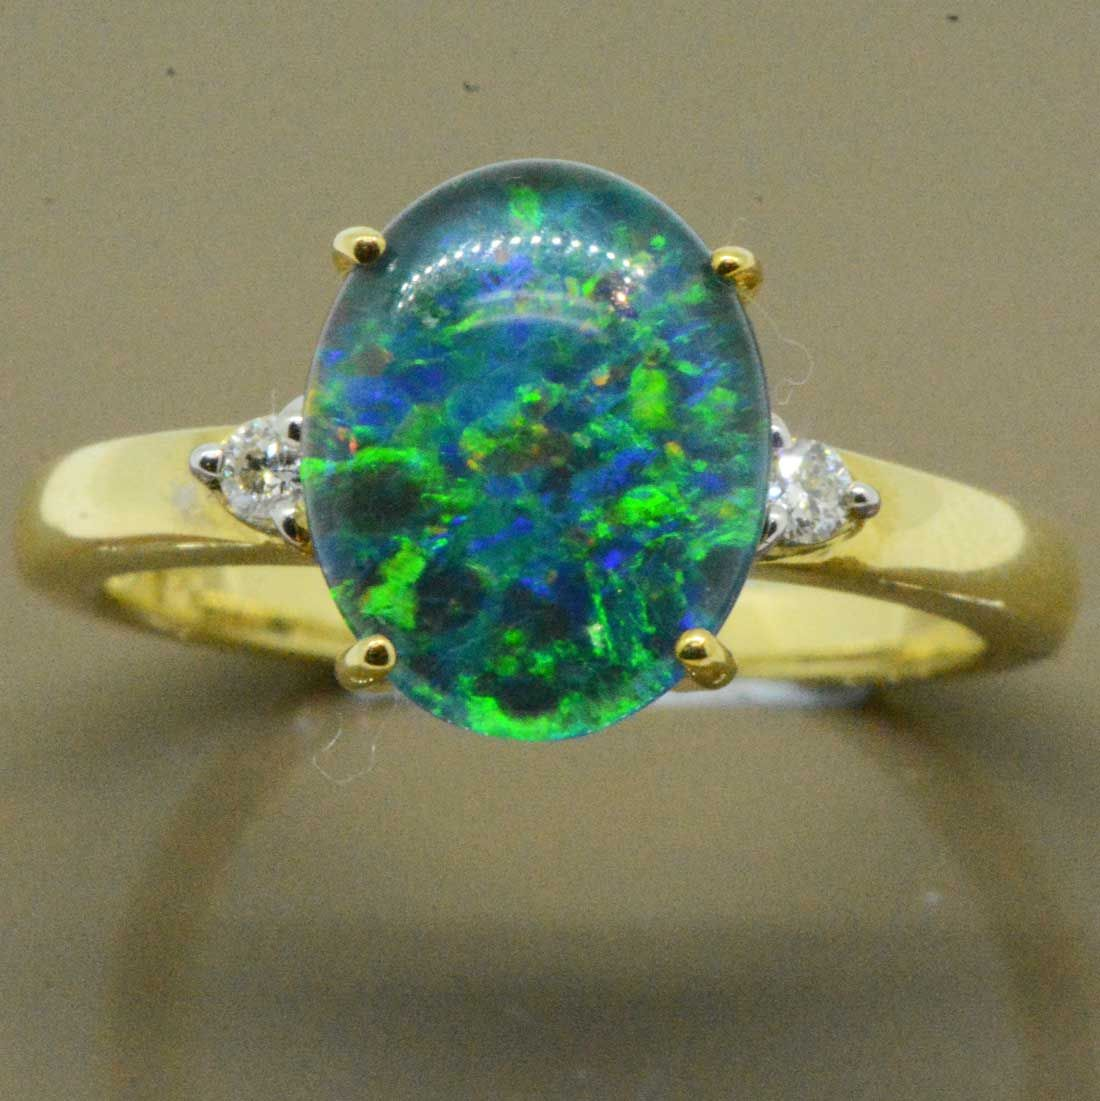 9ct Gold Triplet Opal Ring with 2 Brilliant Cut Diamonds